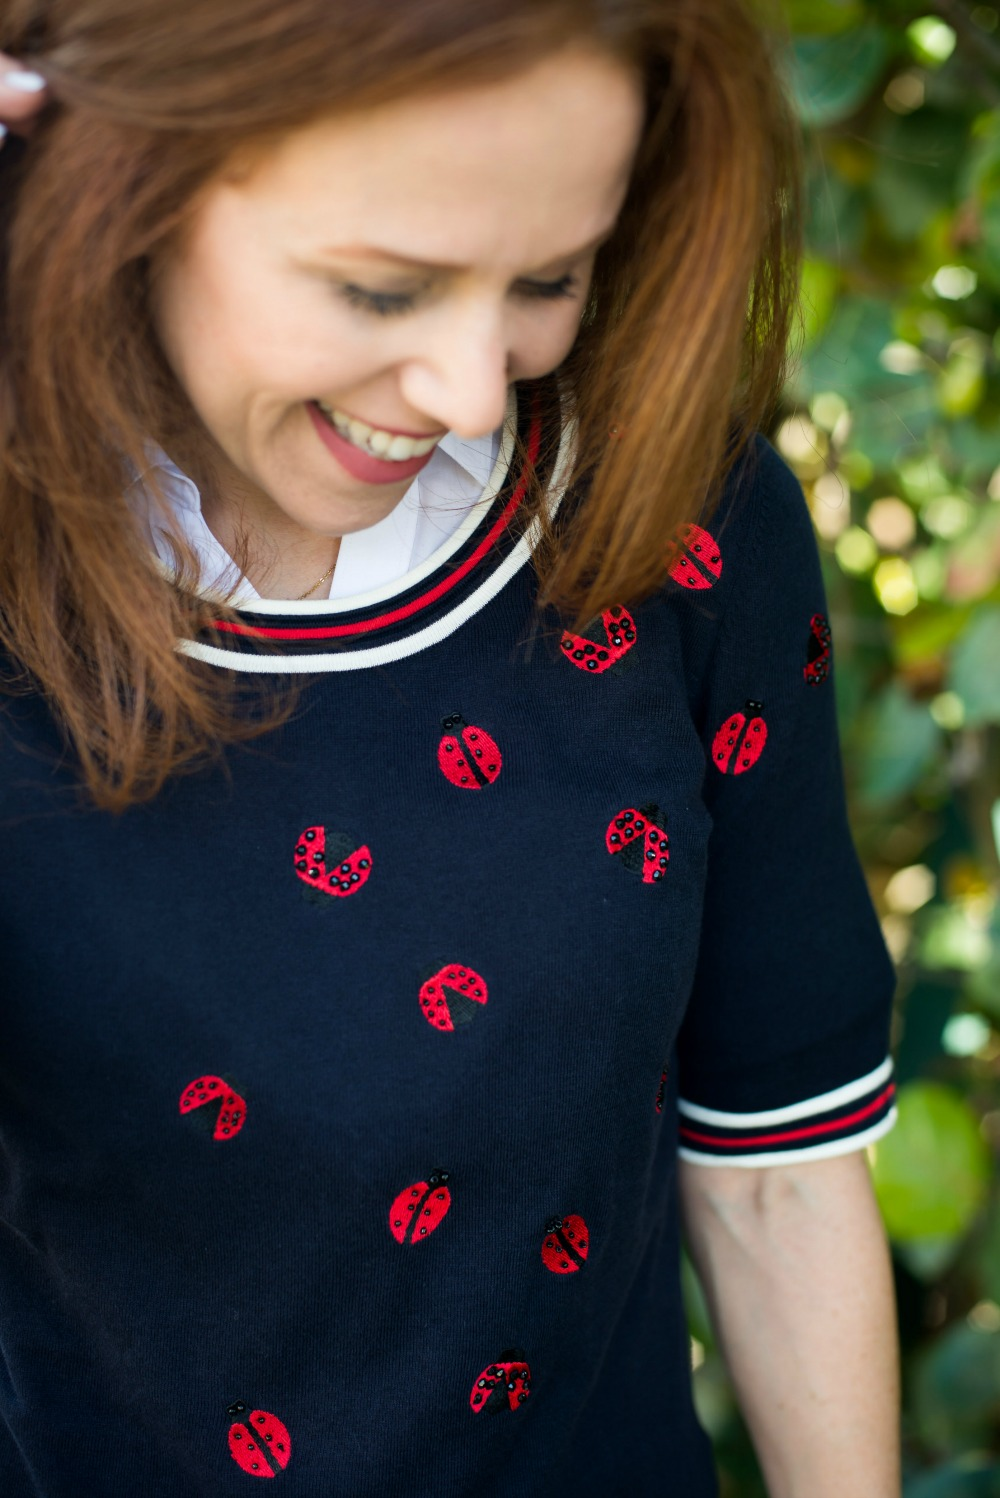 Alyson Seligman styling Talbots x Oprah Magazine ladybug collection  - Talbots collection with Oprah Magazine Collection 2018 - Popular Florida style blogger The Modern Savvy